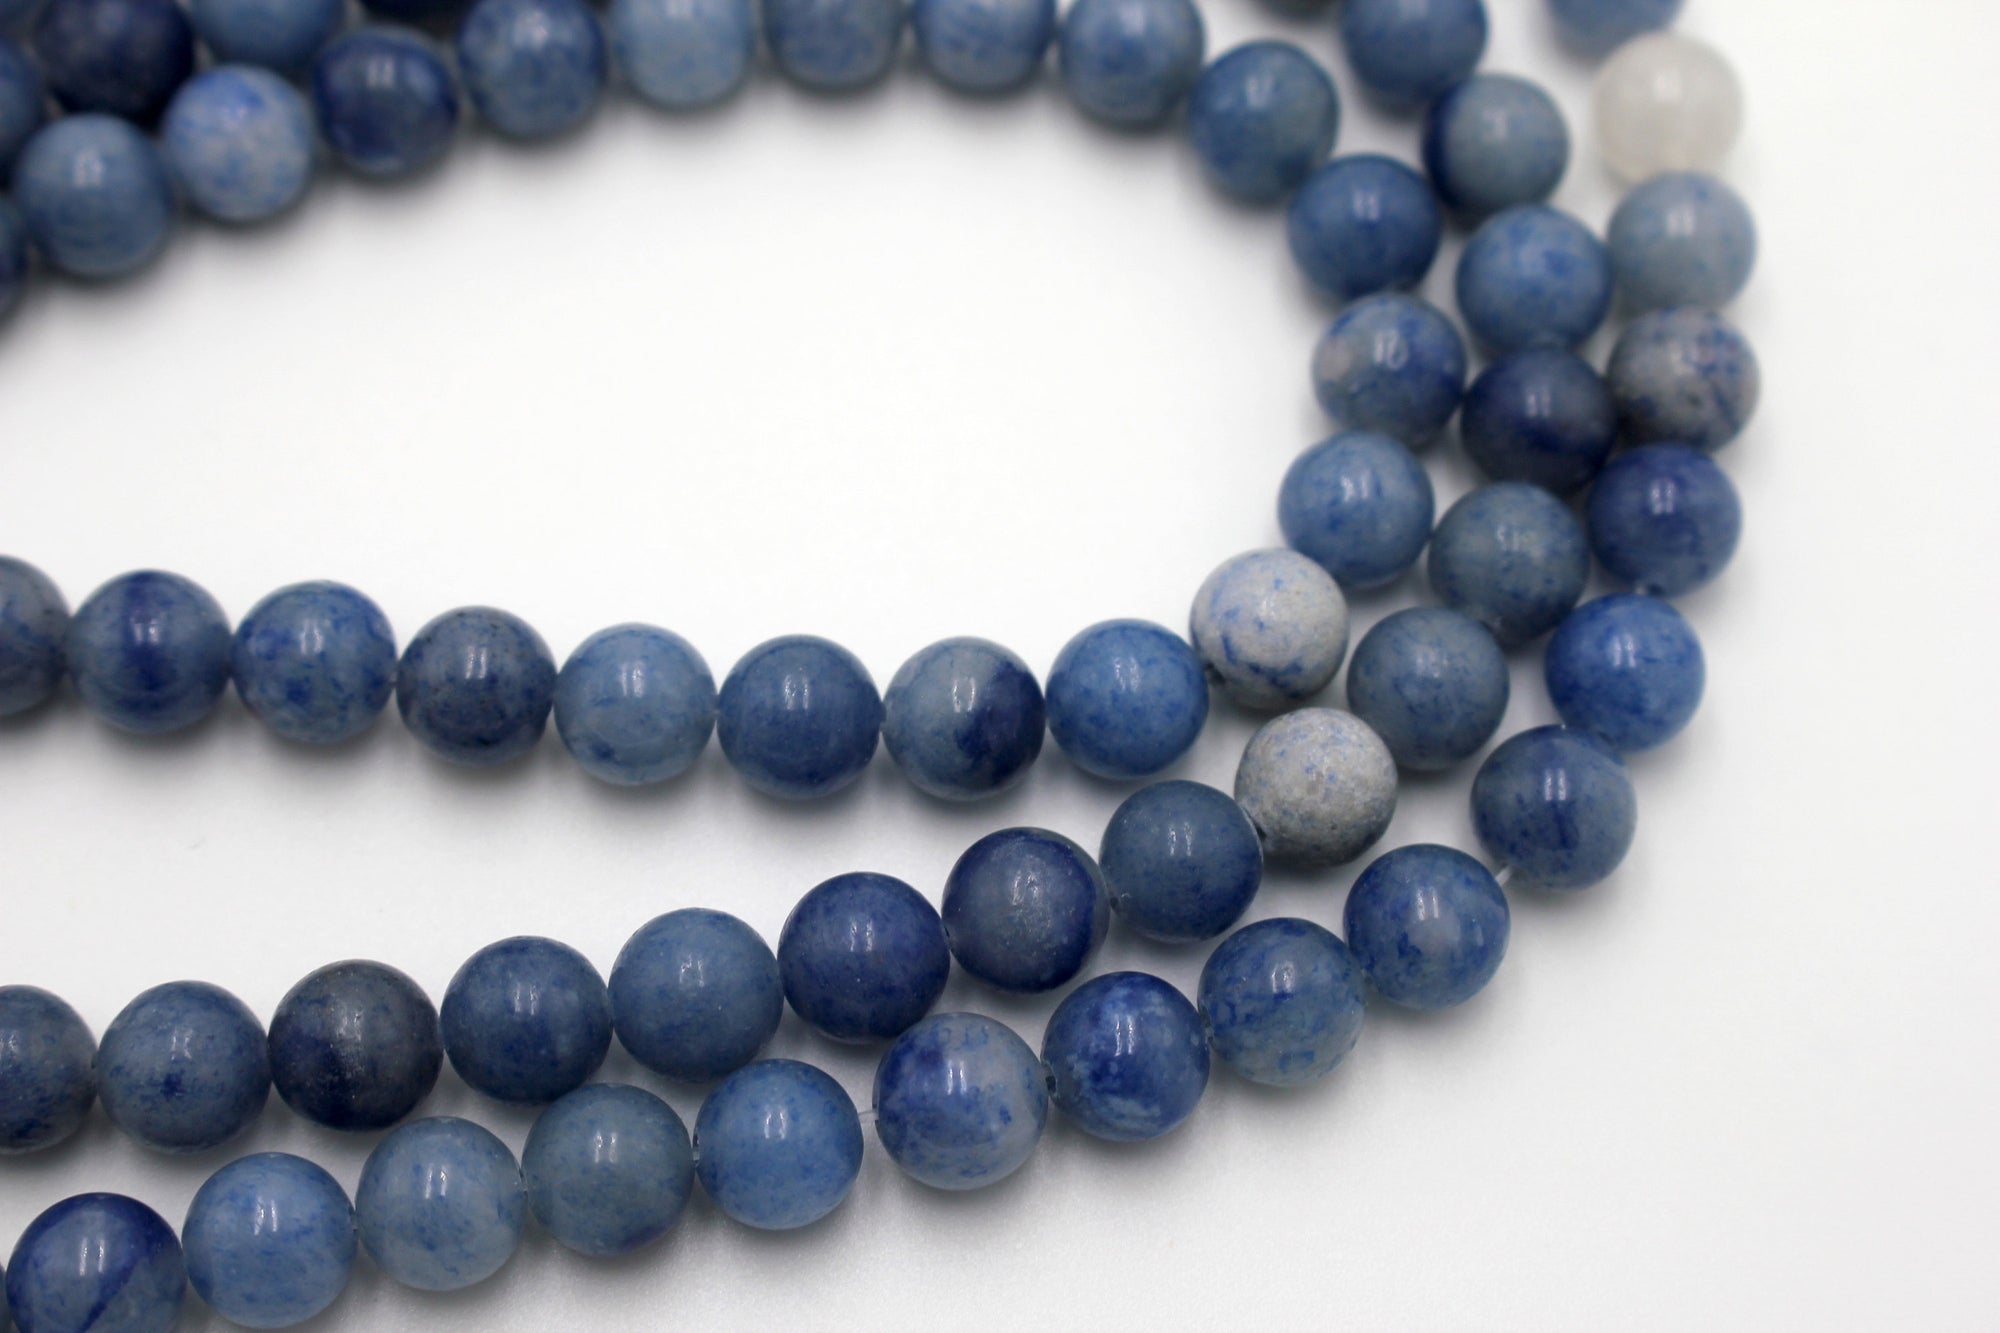 8mm blue aventurine, glossy, 1 strand, 16 inches, approx. 48 beads.